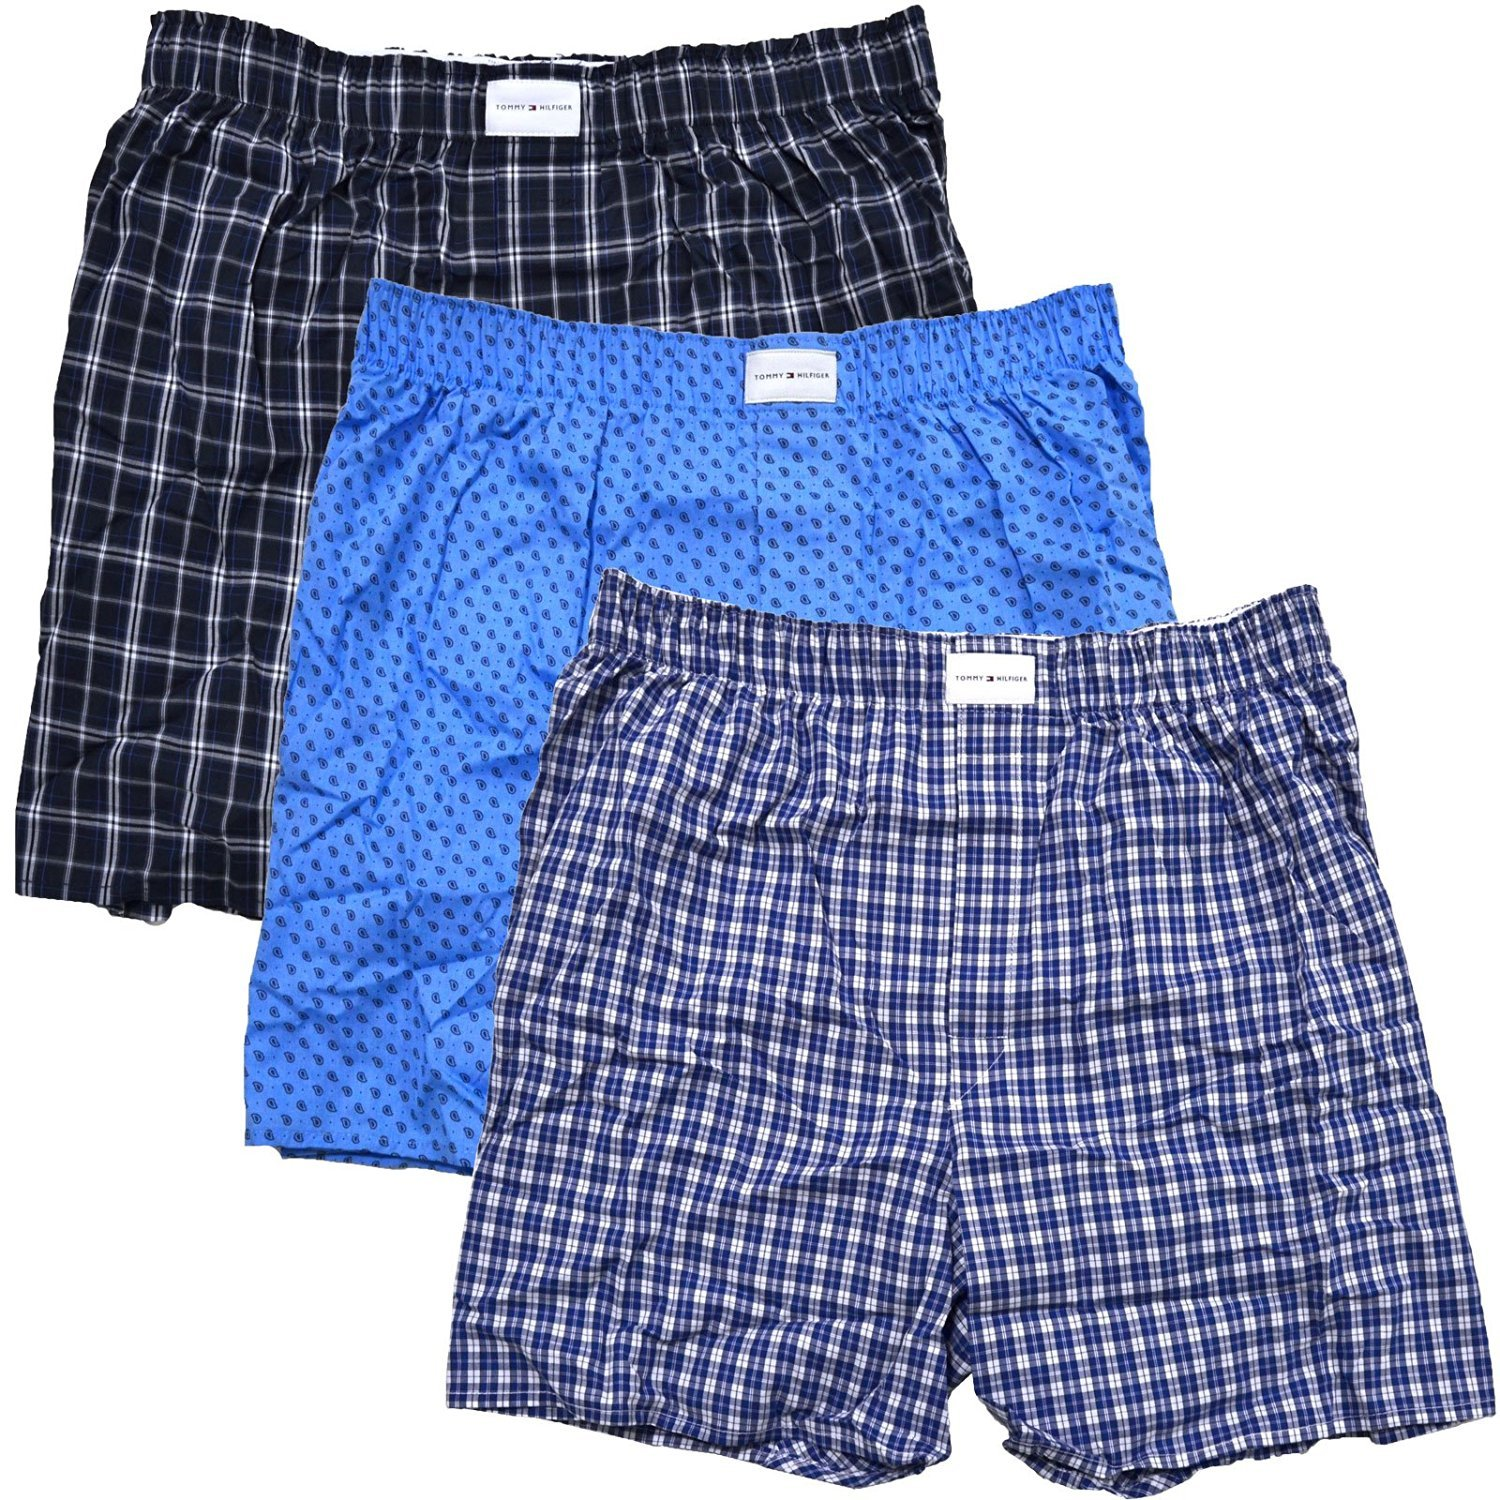 Tommy Hilfiger Mens 3-Pack Woven Boxer (Medium, Blue Navy Plaid)